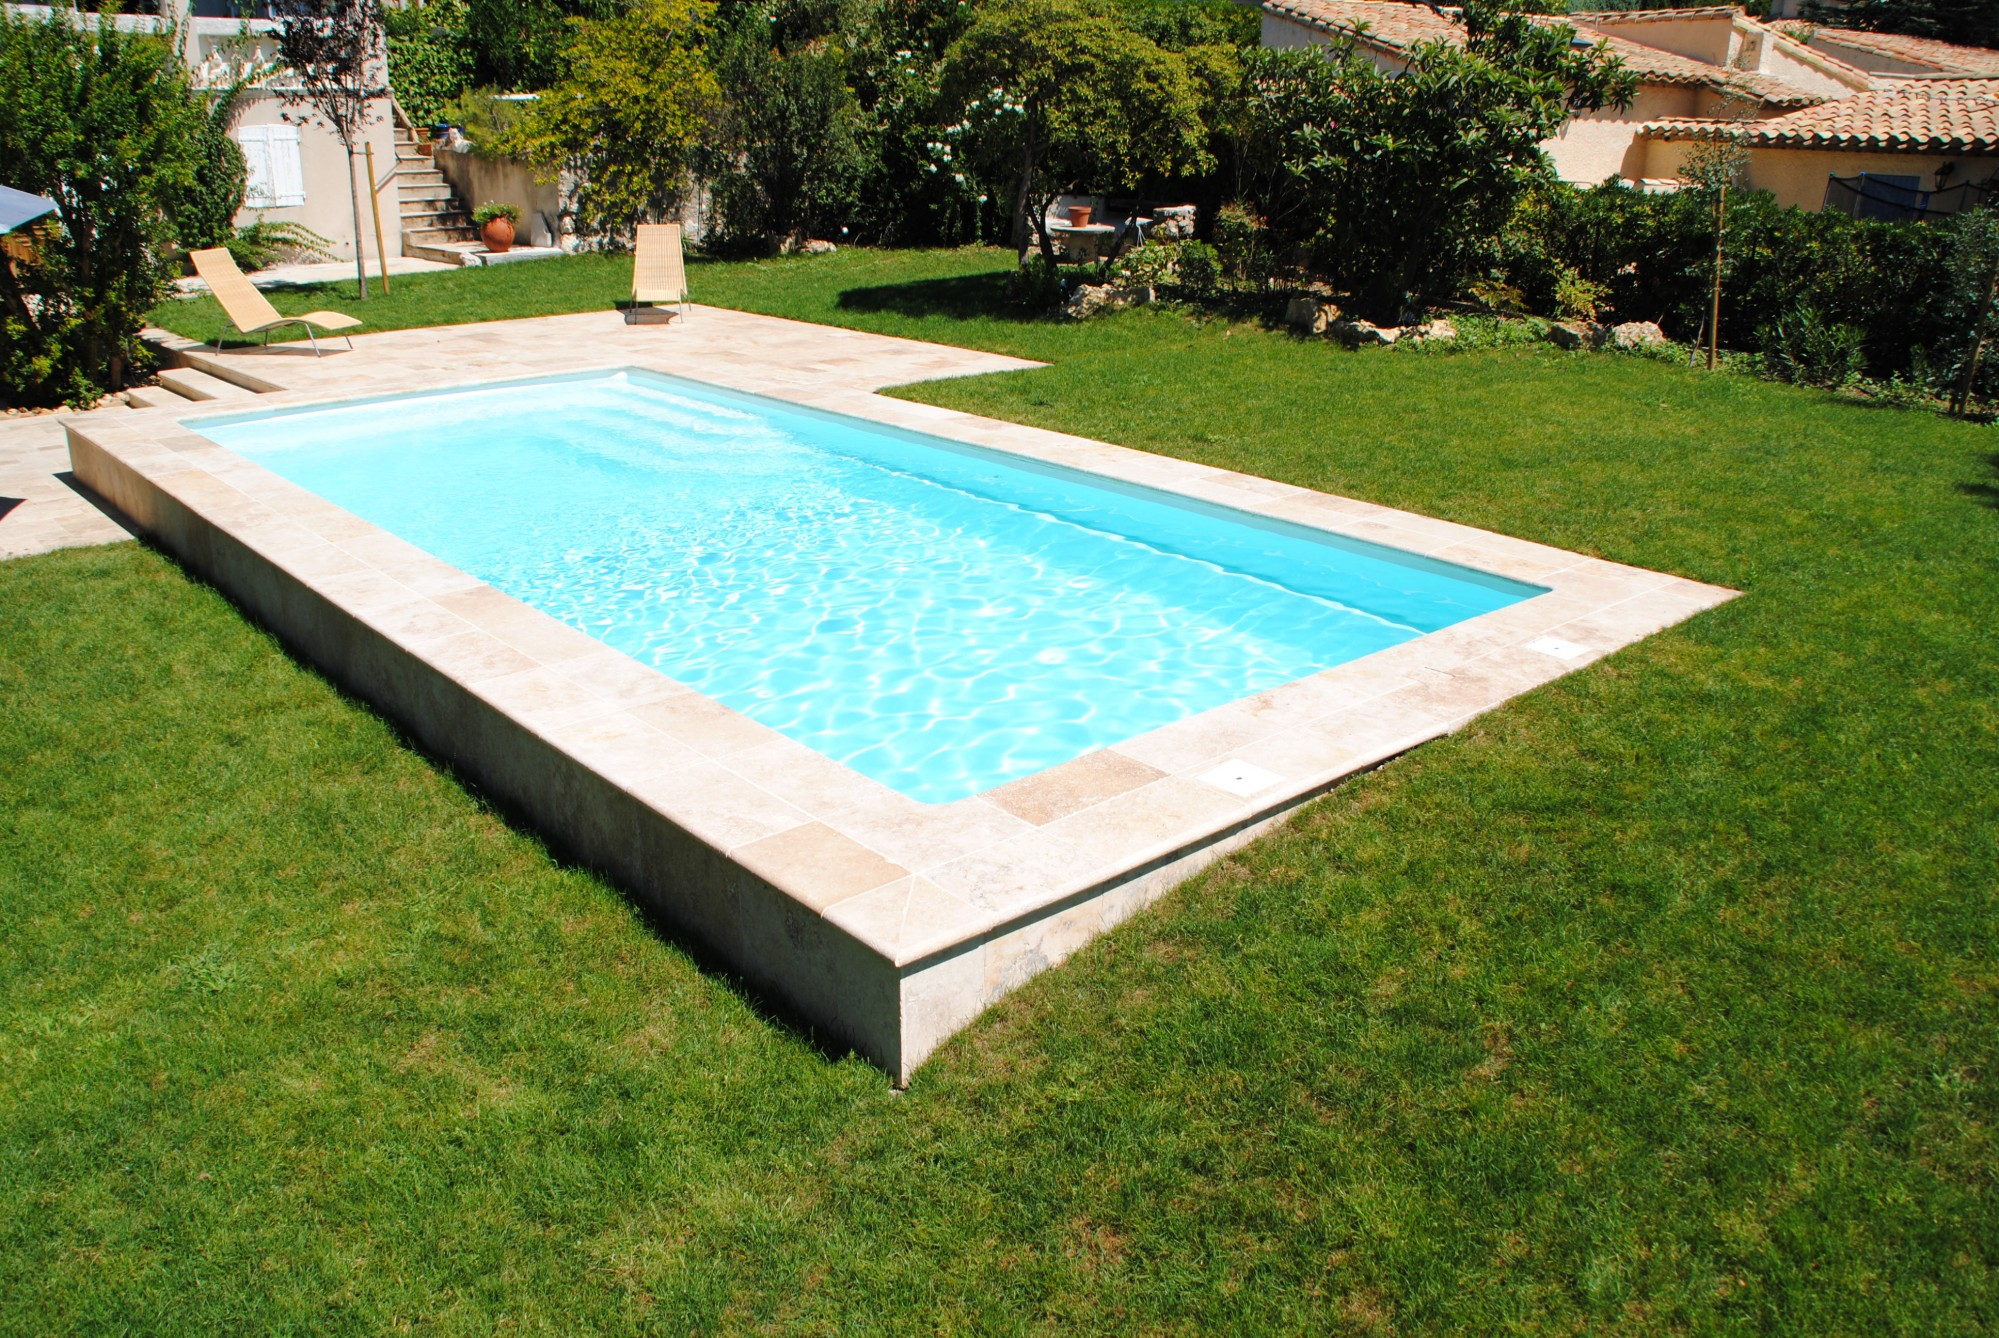 Piscine enterr e pas chere for Piscine coque polyester d exposition